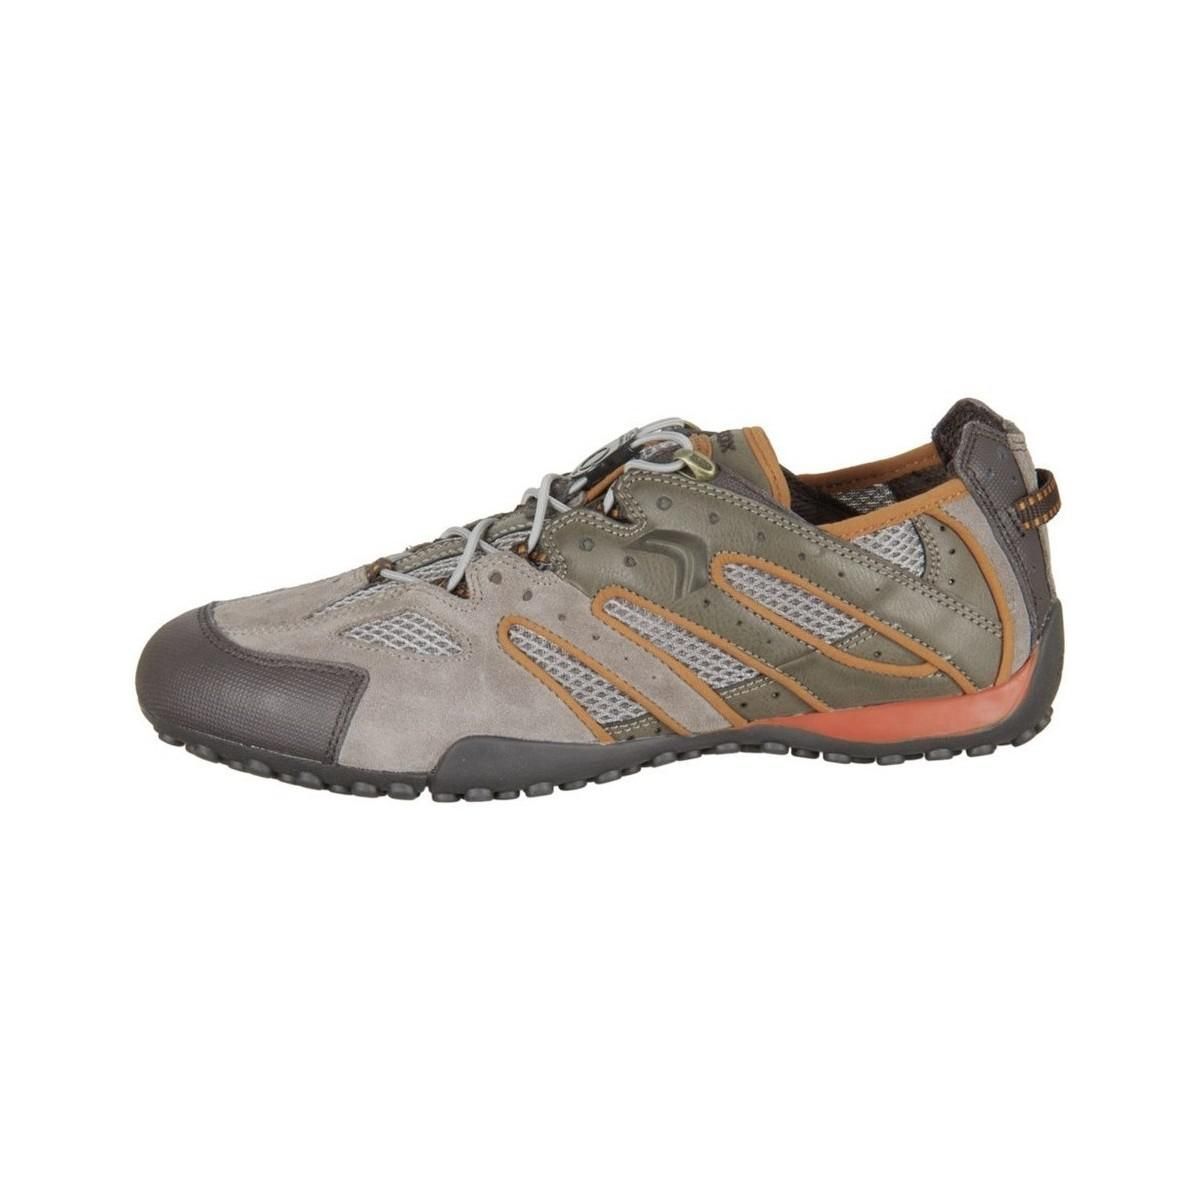 Geox Snake J Taupe Dk Orange Scam Mesh Dk Men's Shoes (trainers) In Grey in Grey for Men